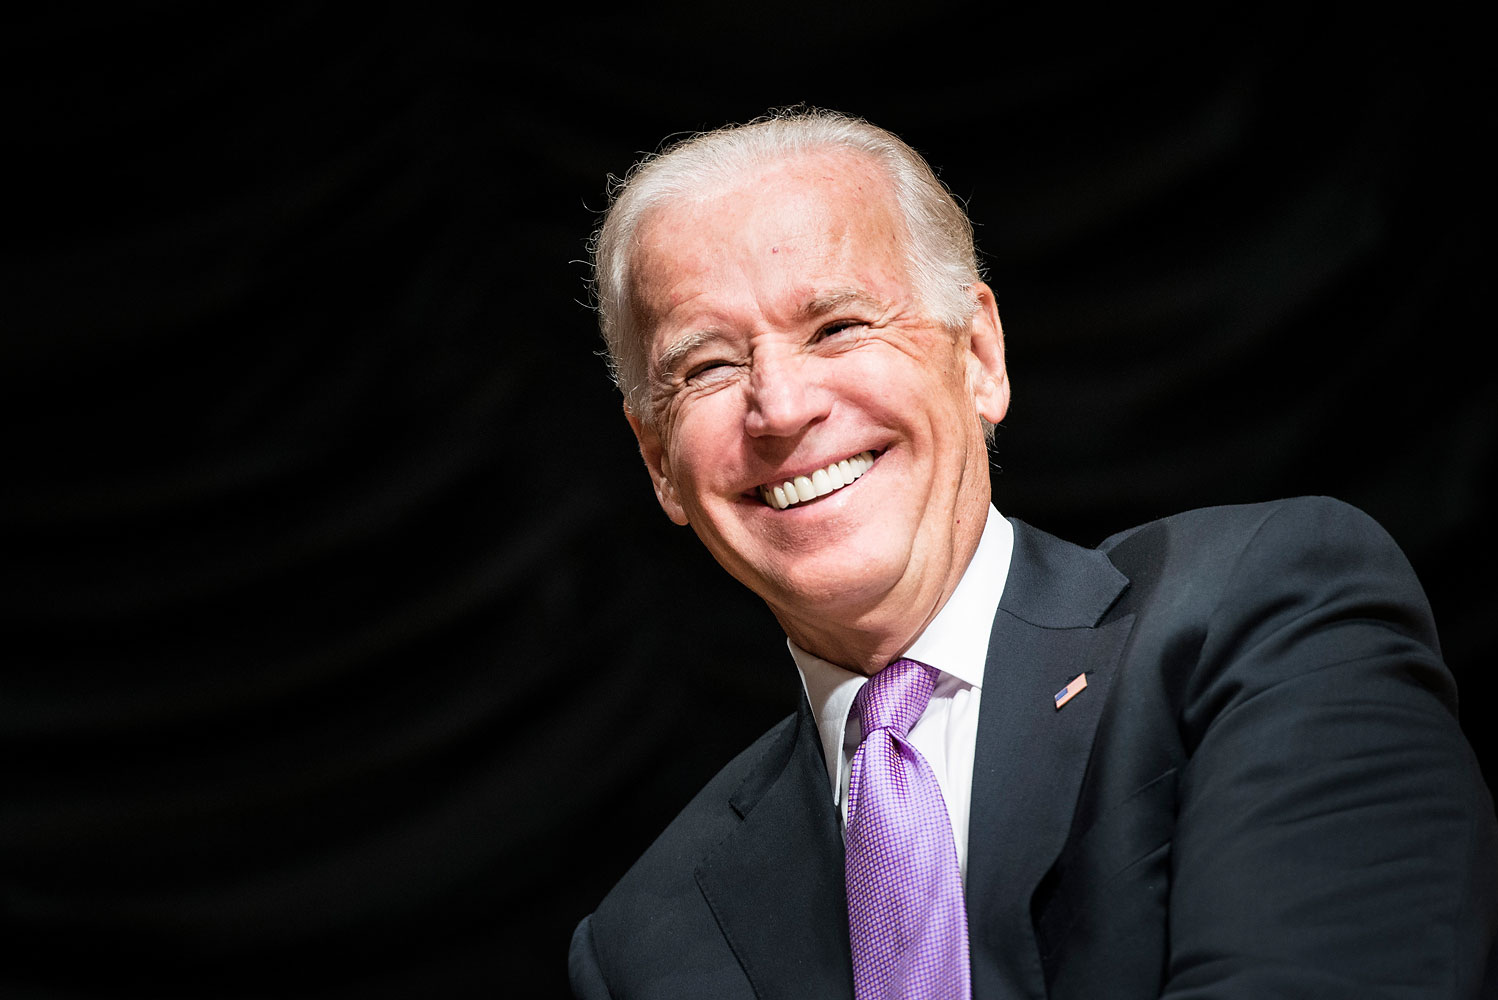 US Vice President Joe Biden smiles during a farewell ceremony during a farewell ceremony for Homeland Security Secretary Janet Napolitano at the Ronald Reagan Building Sept. 6, 2013 in Washington, DC.